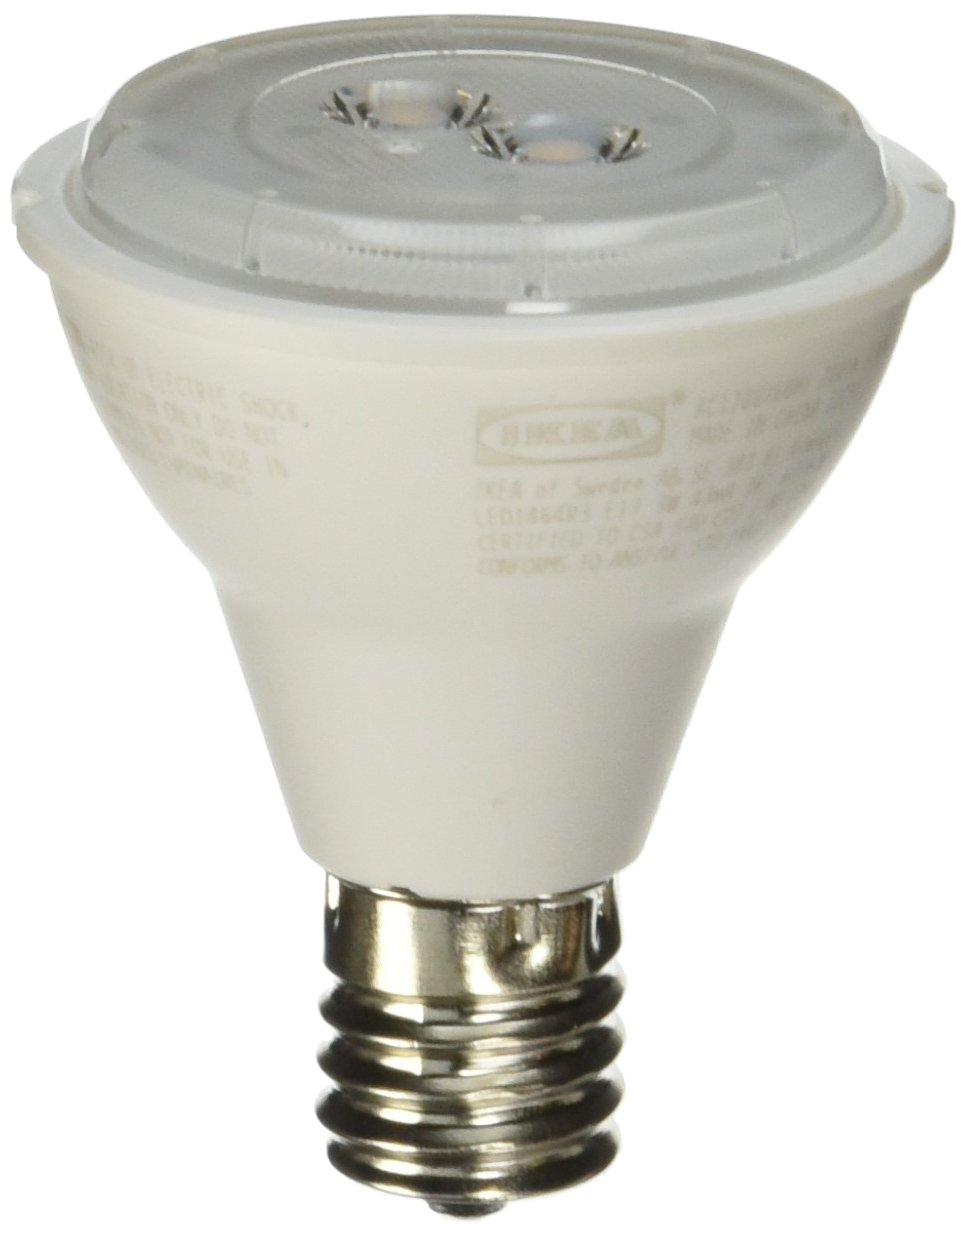 Ikea E17 Led Light Bulb R14 Reflector - Led Household Light Bulbs ...